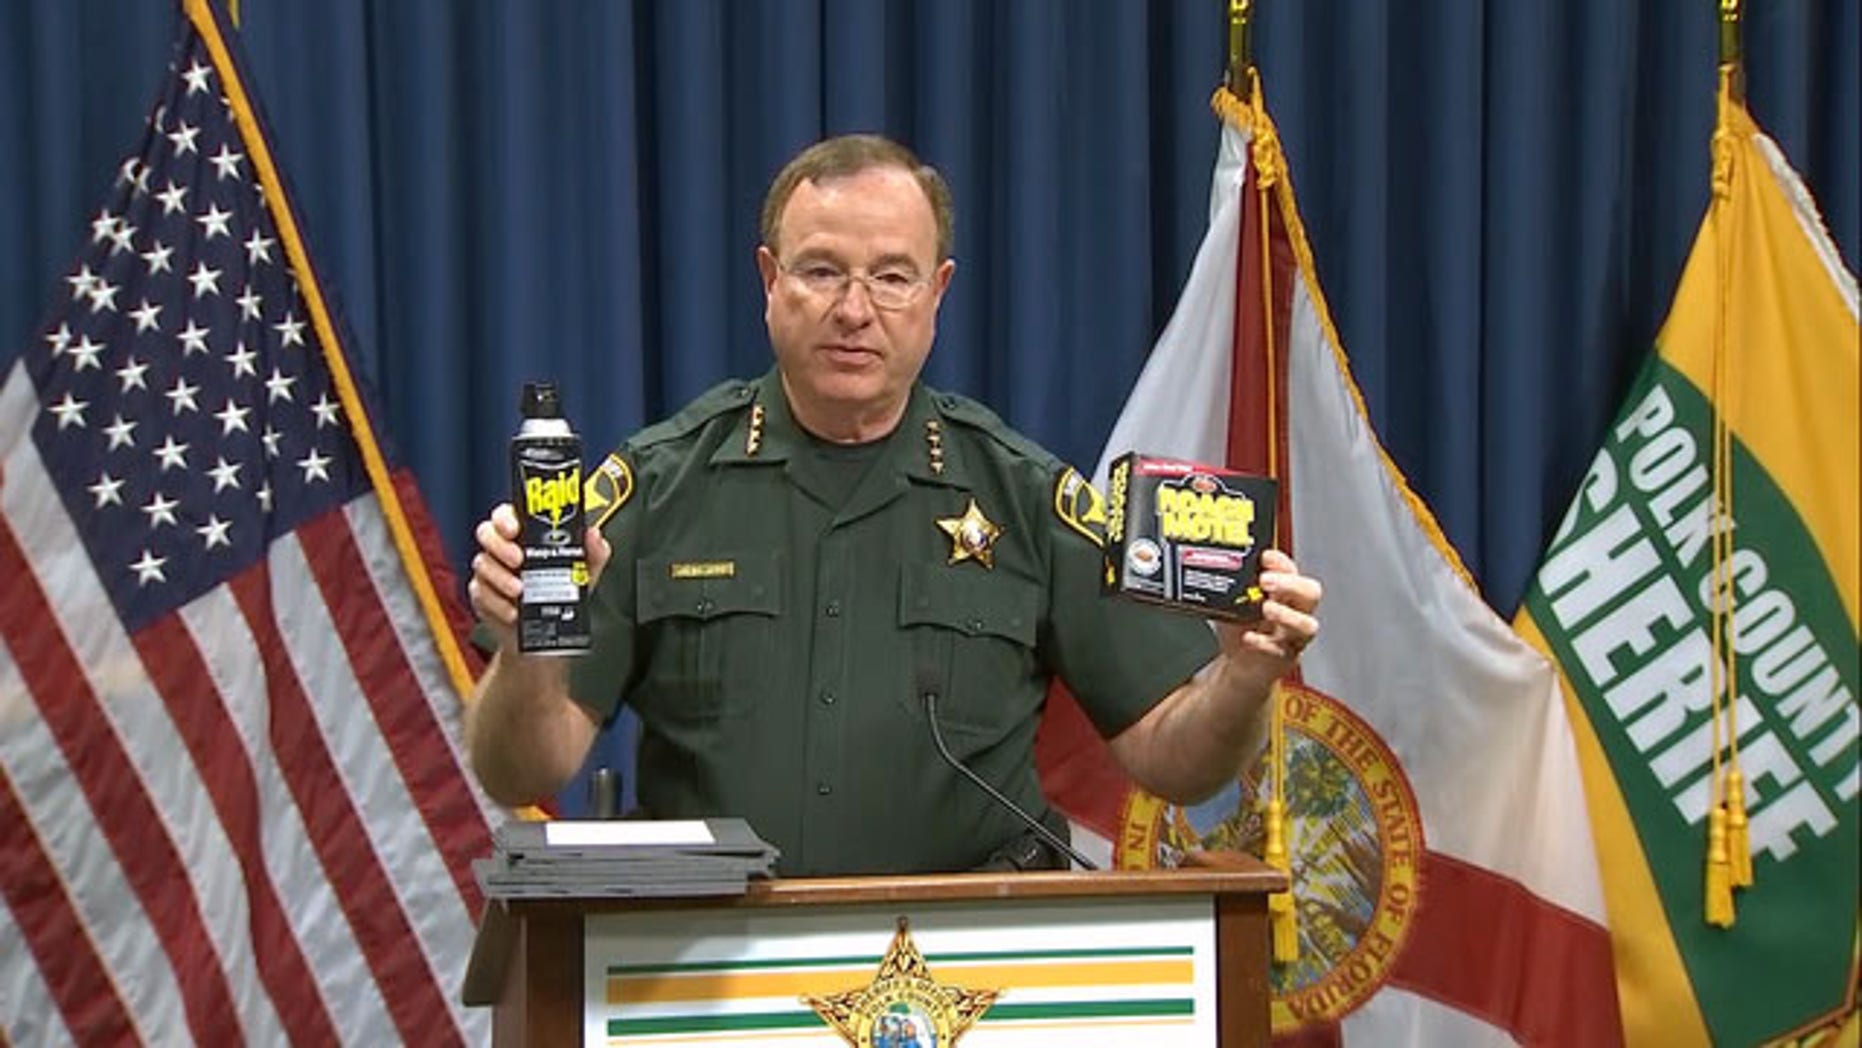 Polk County Sheriff Grady Judd holds roach-killing chemicals as he addresses the media Tuesday.